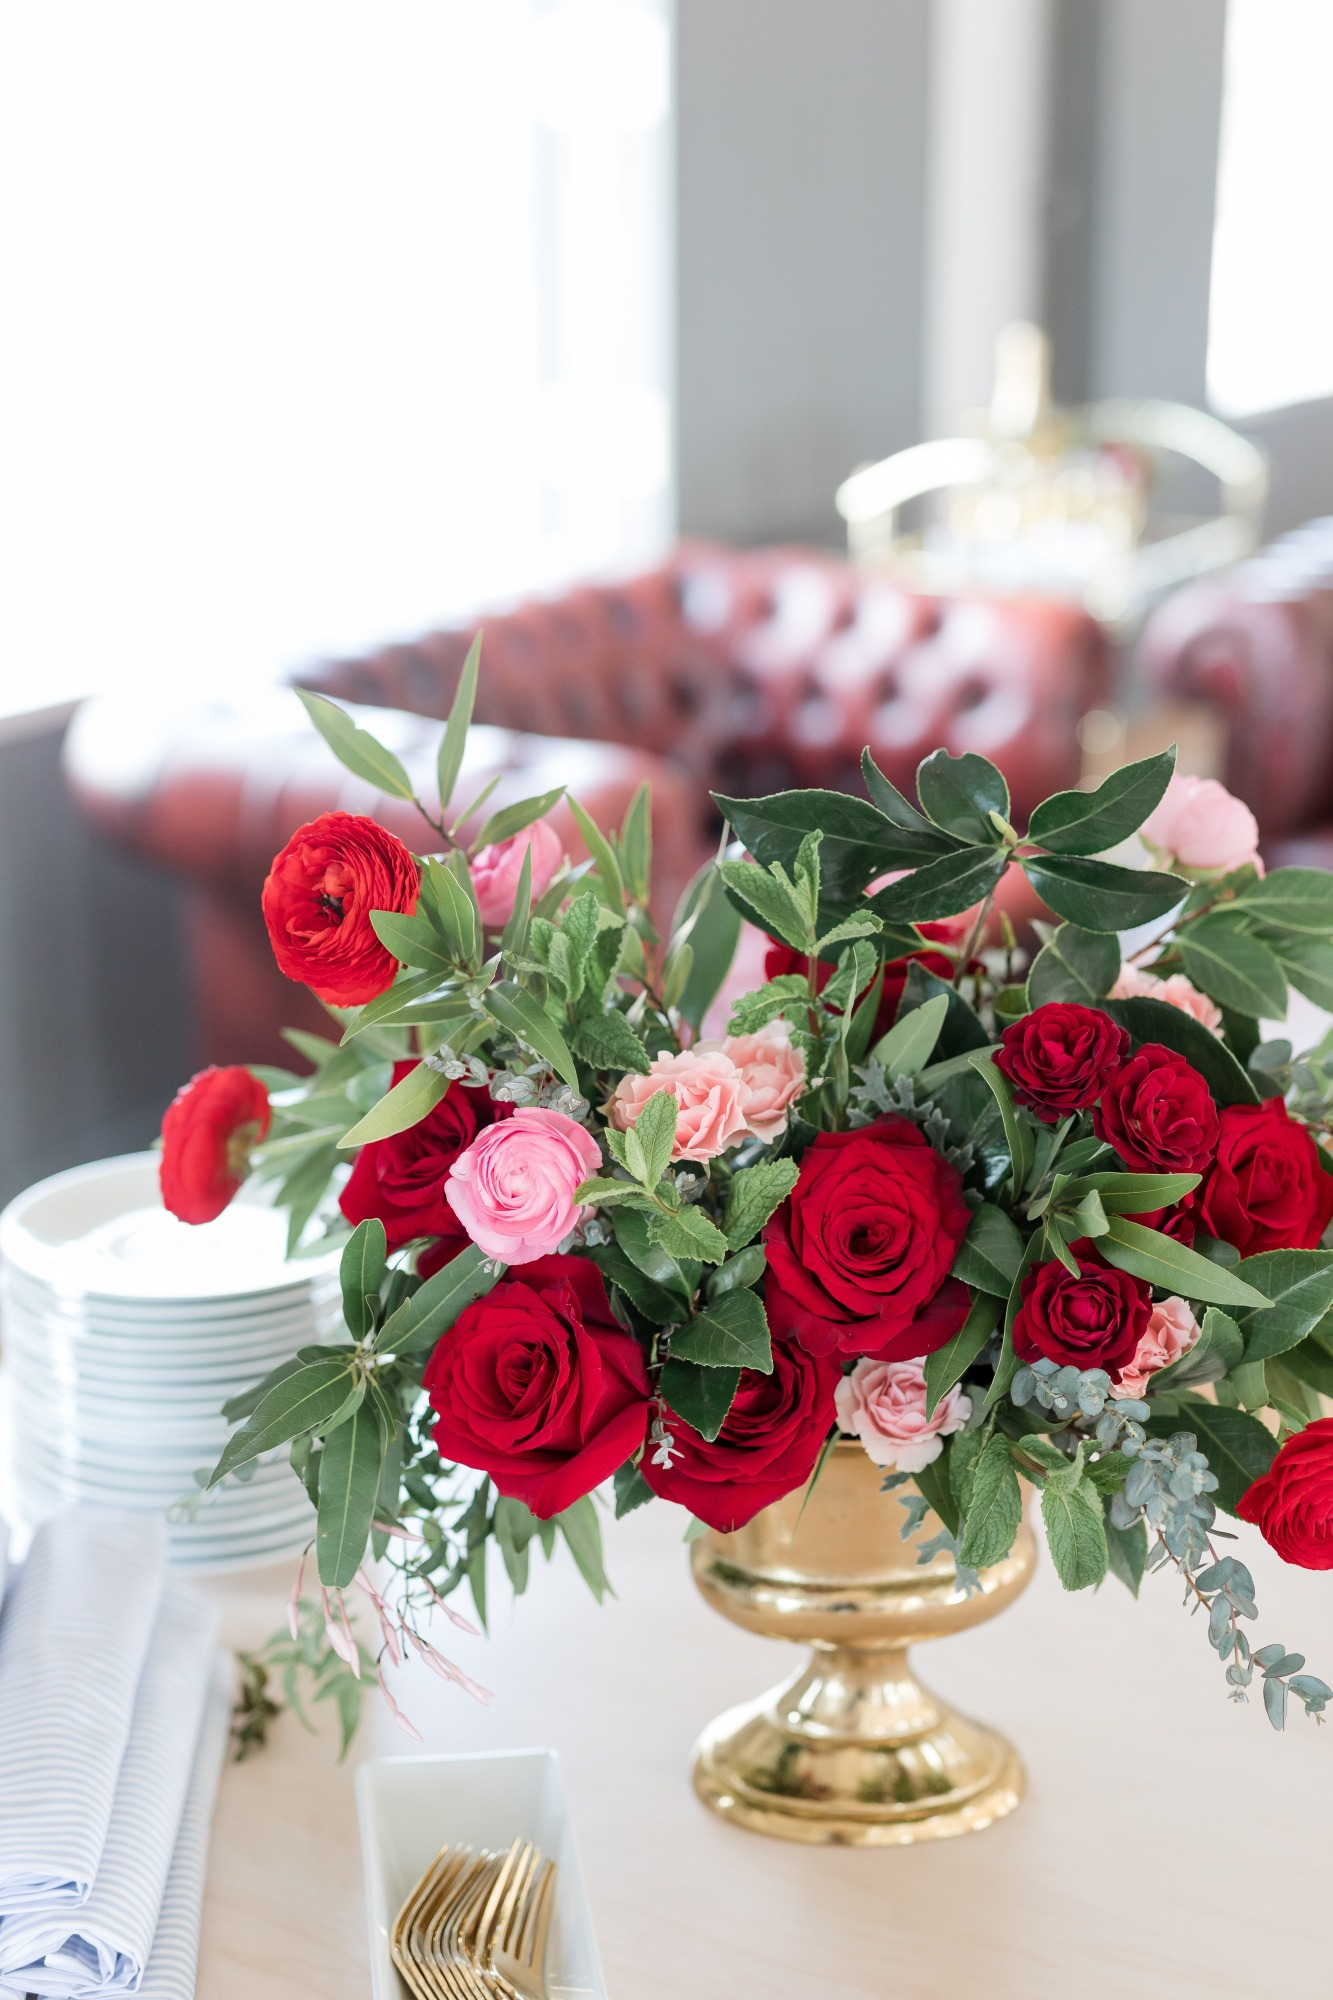 Roses Flowers from Off to the Races Derby Party Styled by Cherry Blossom Events | Black Twine